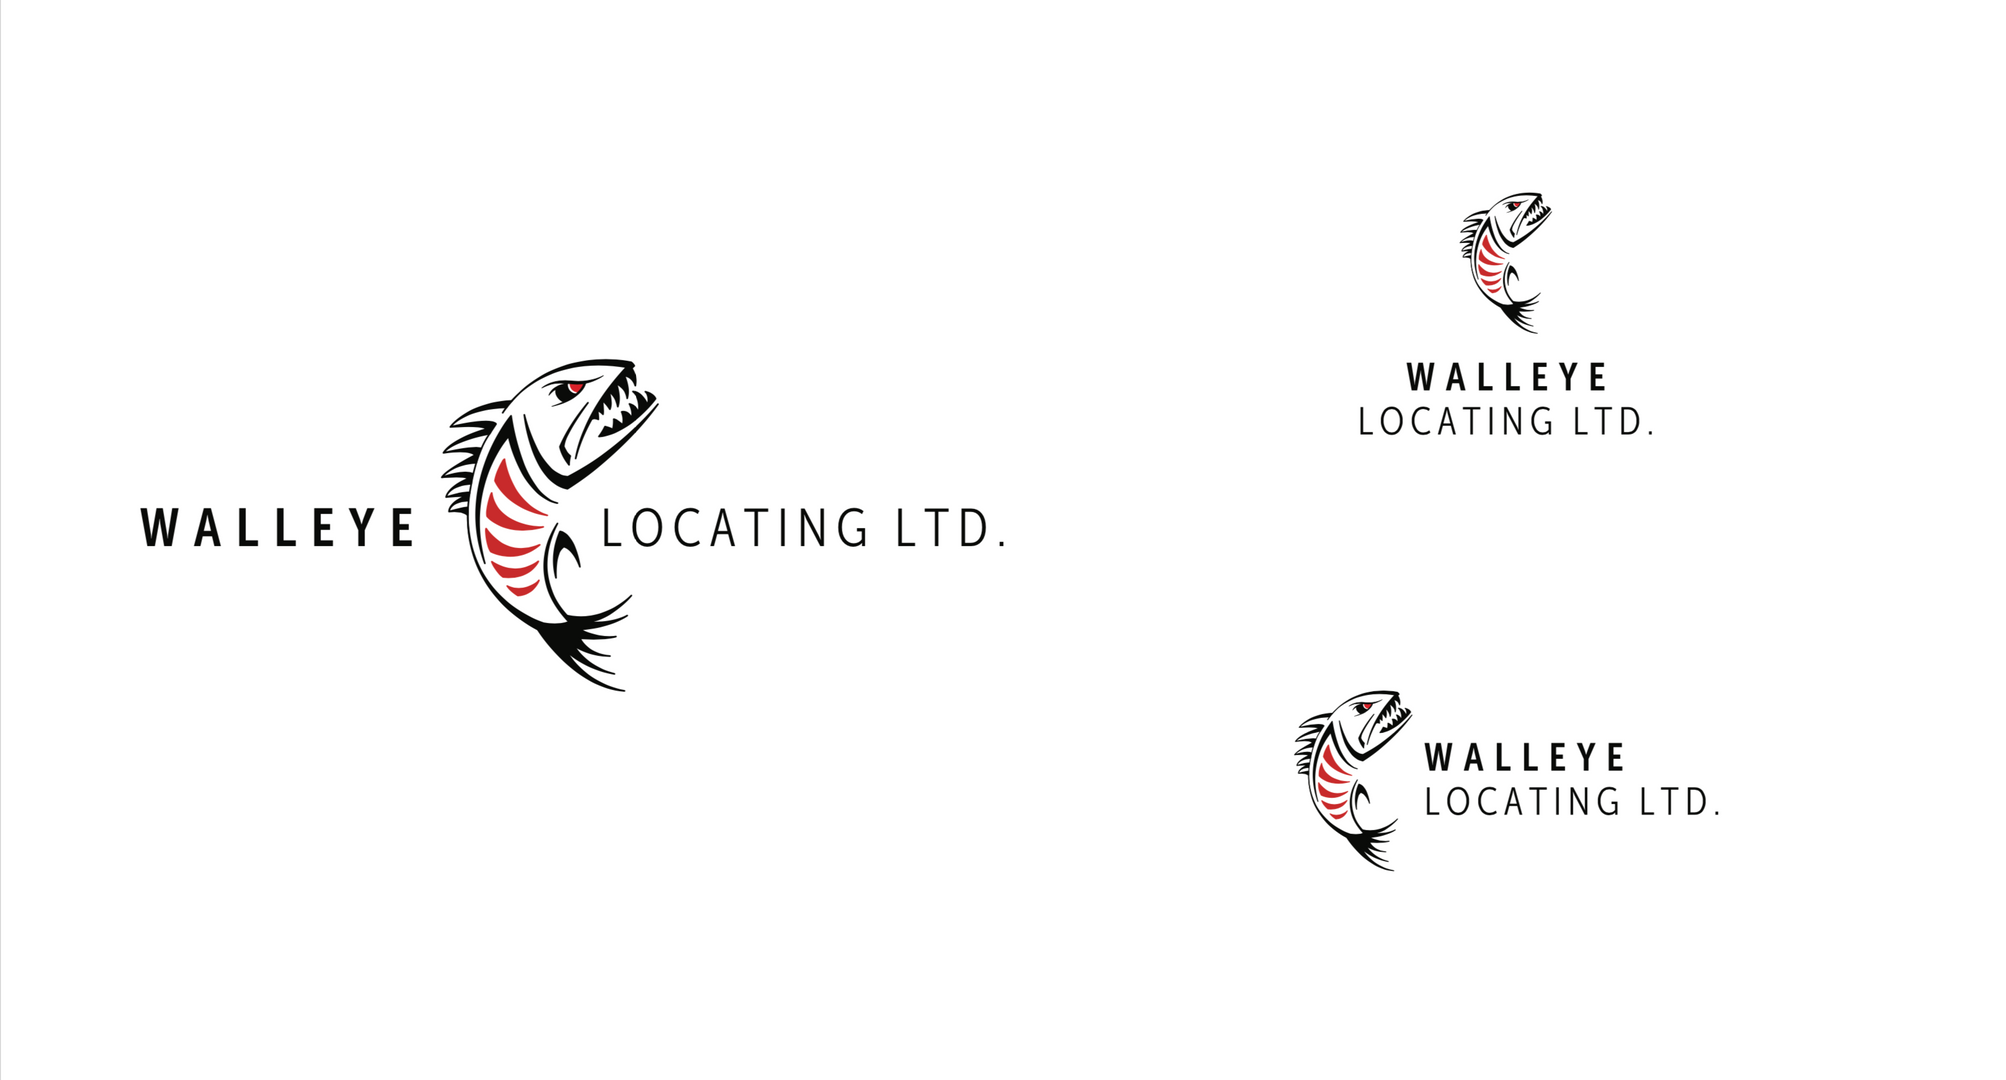 walleye_locating_logo_white.png